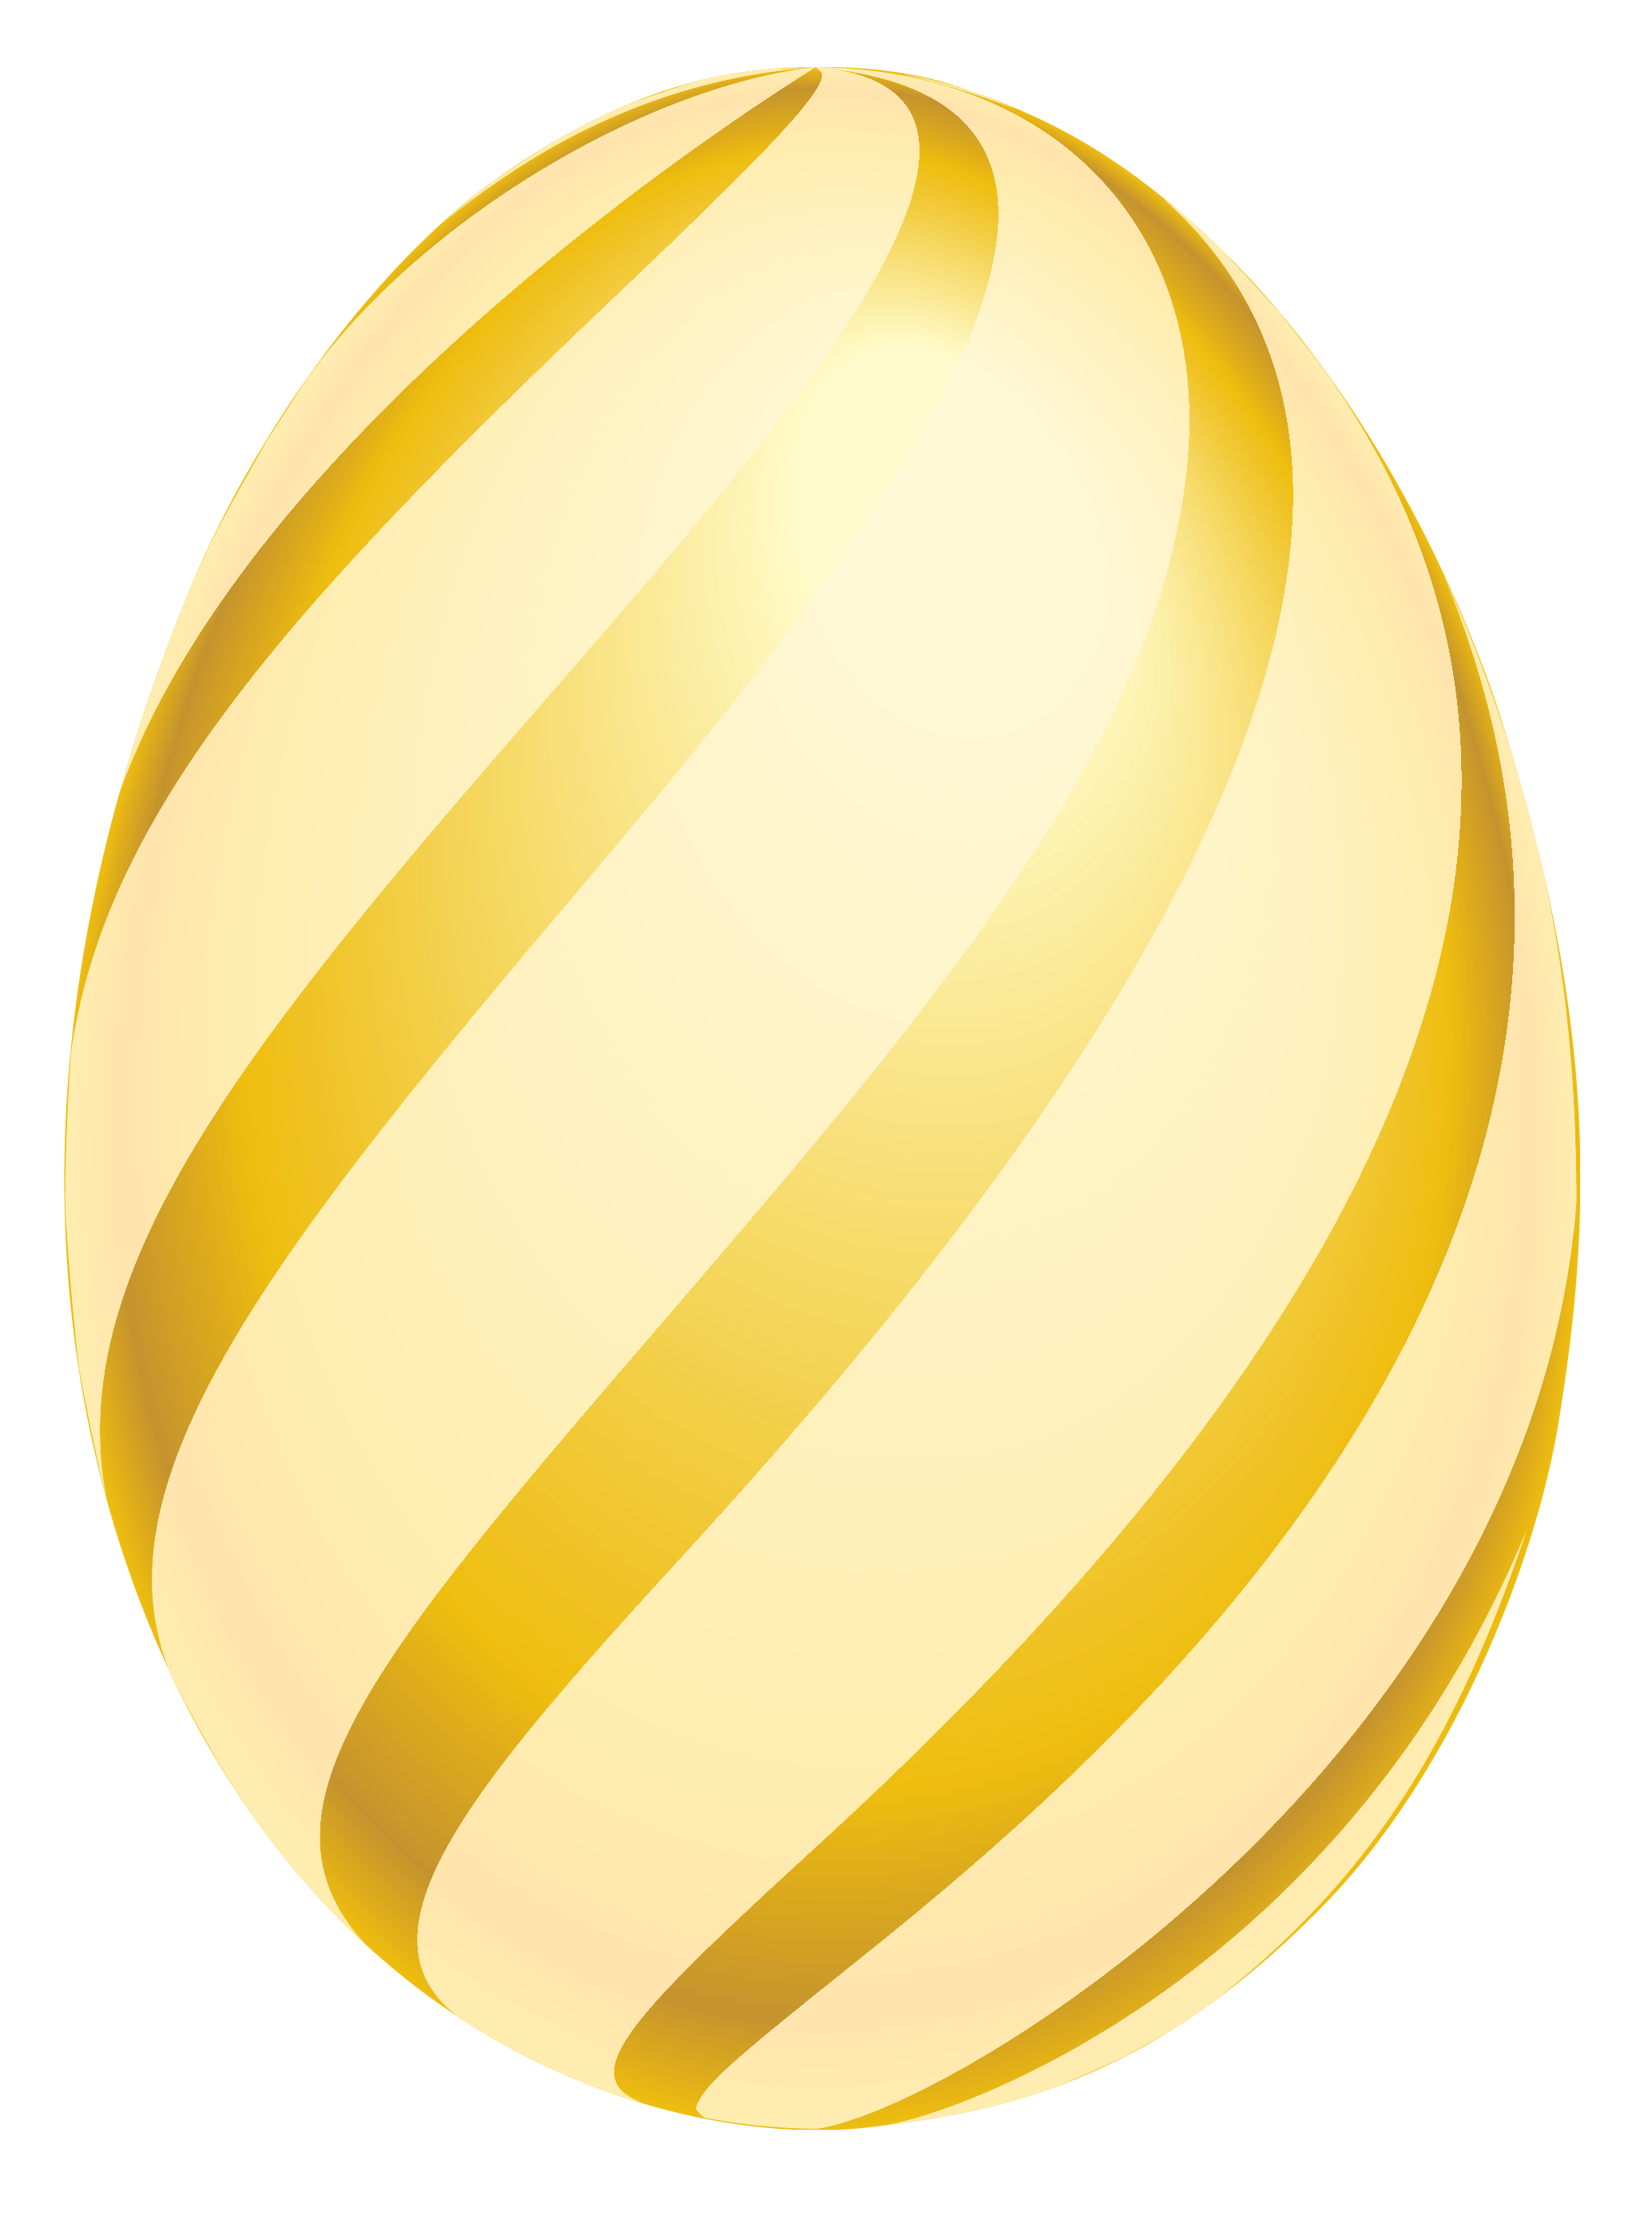 Gold easter egg clipart royalty free library Easter Golden Striped Egg PNG Clipart Picture royalty free library